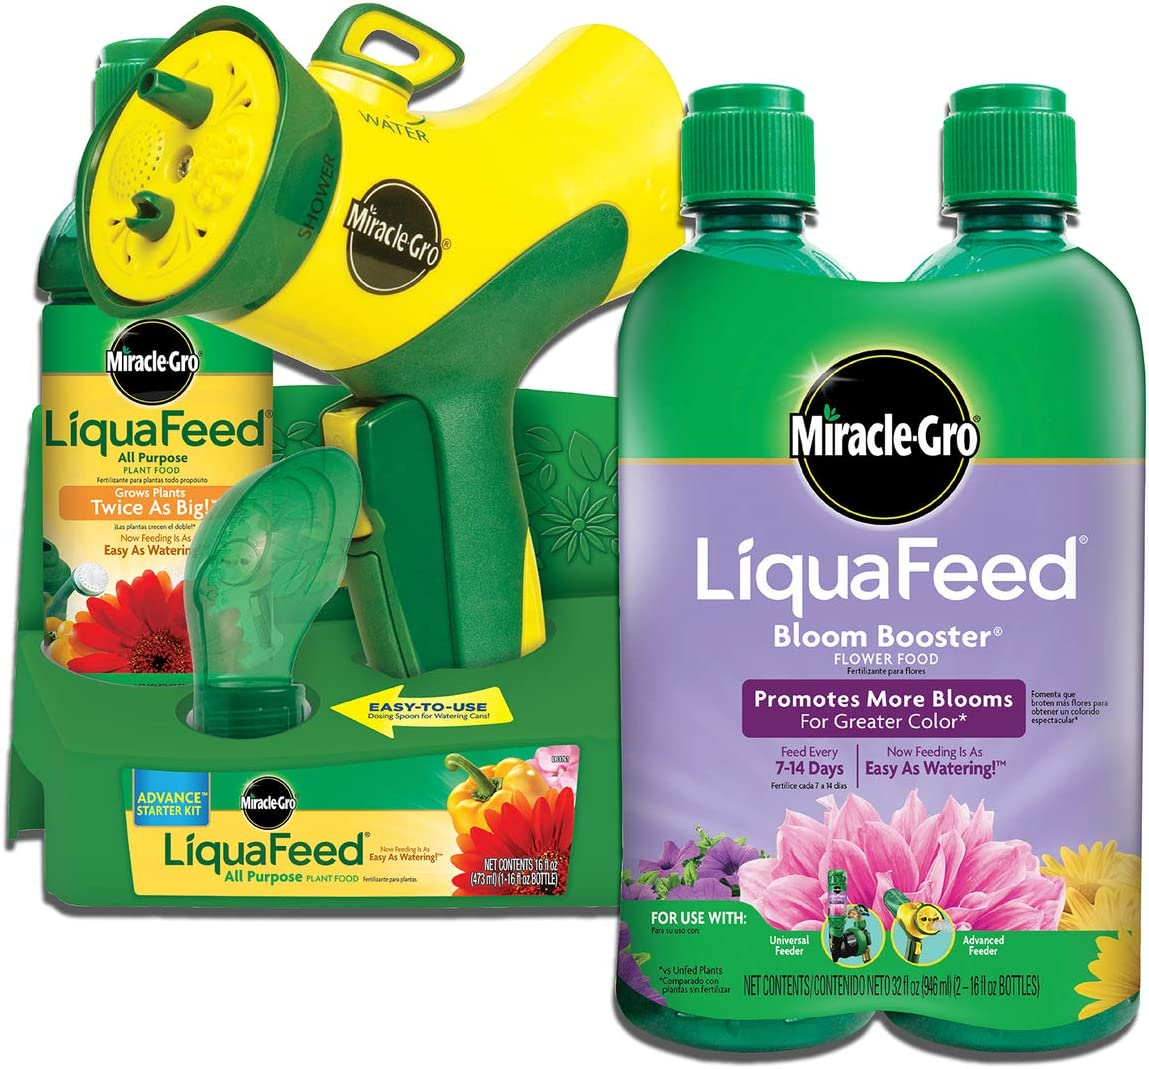 Miracle-Gro LiquaFeed All Purpose Plant Food Advance Starter Kit and Bloom Booster Flower Food Bundle: Feeding as Easy as Watering